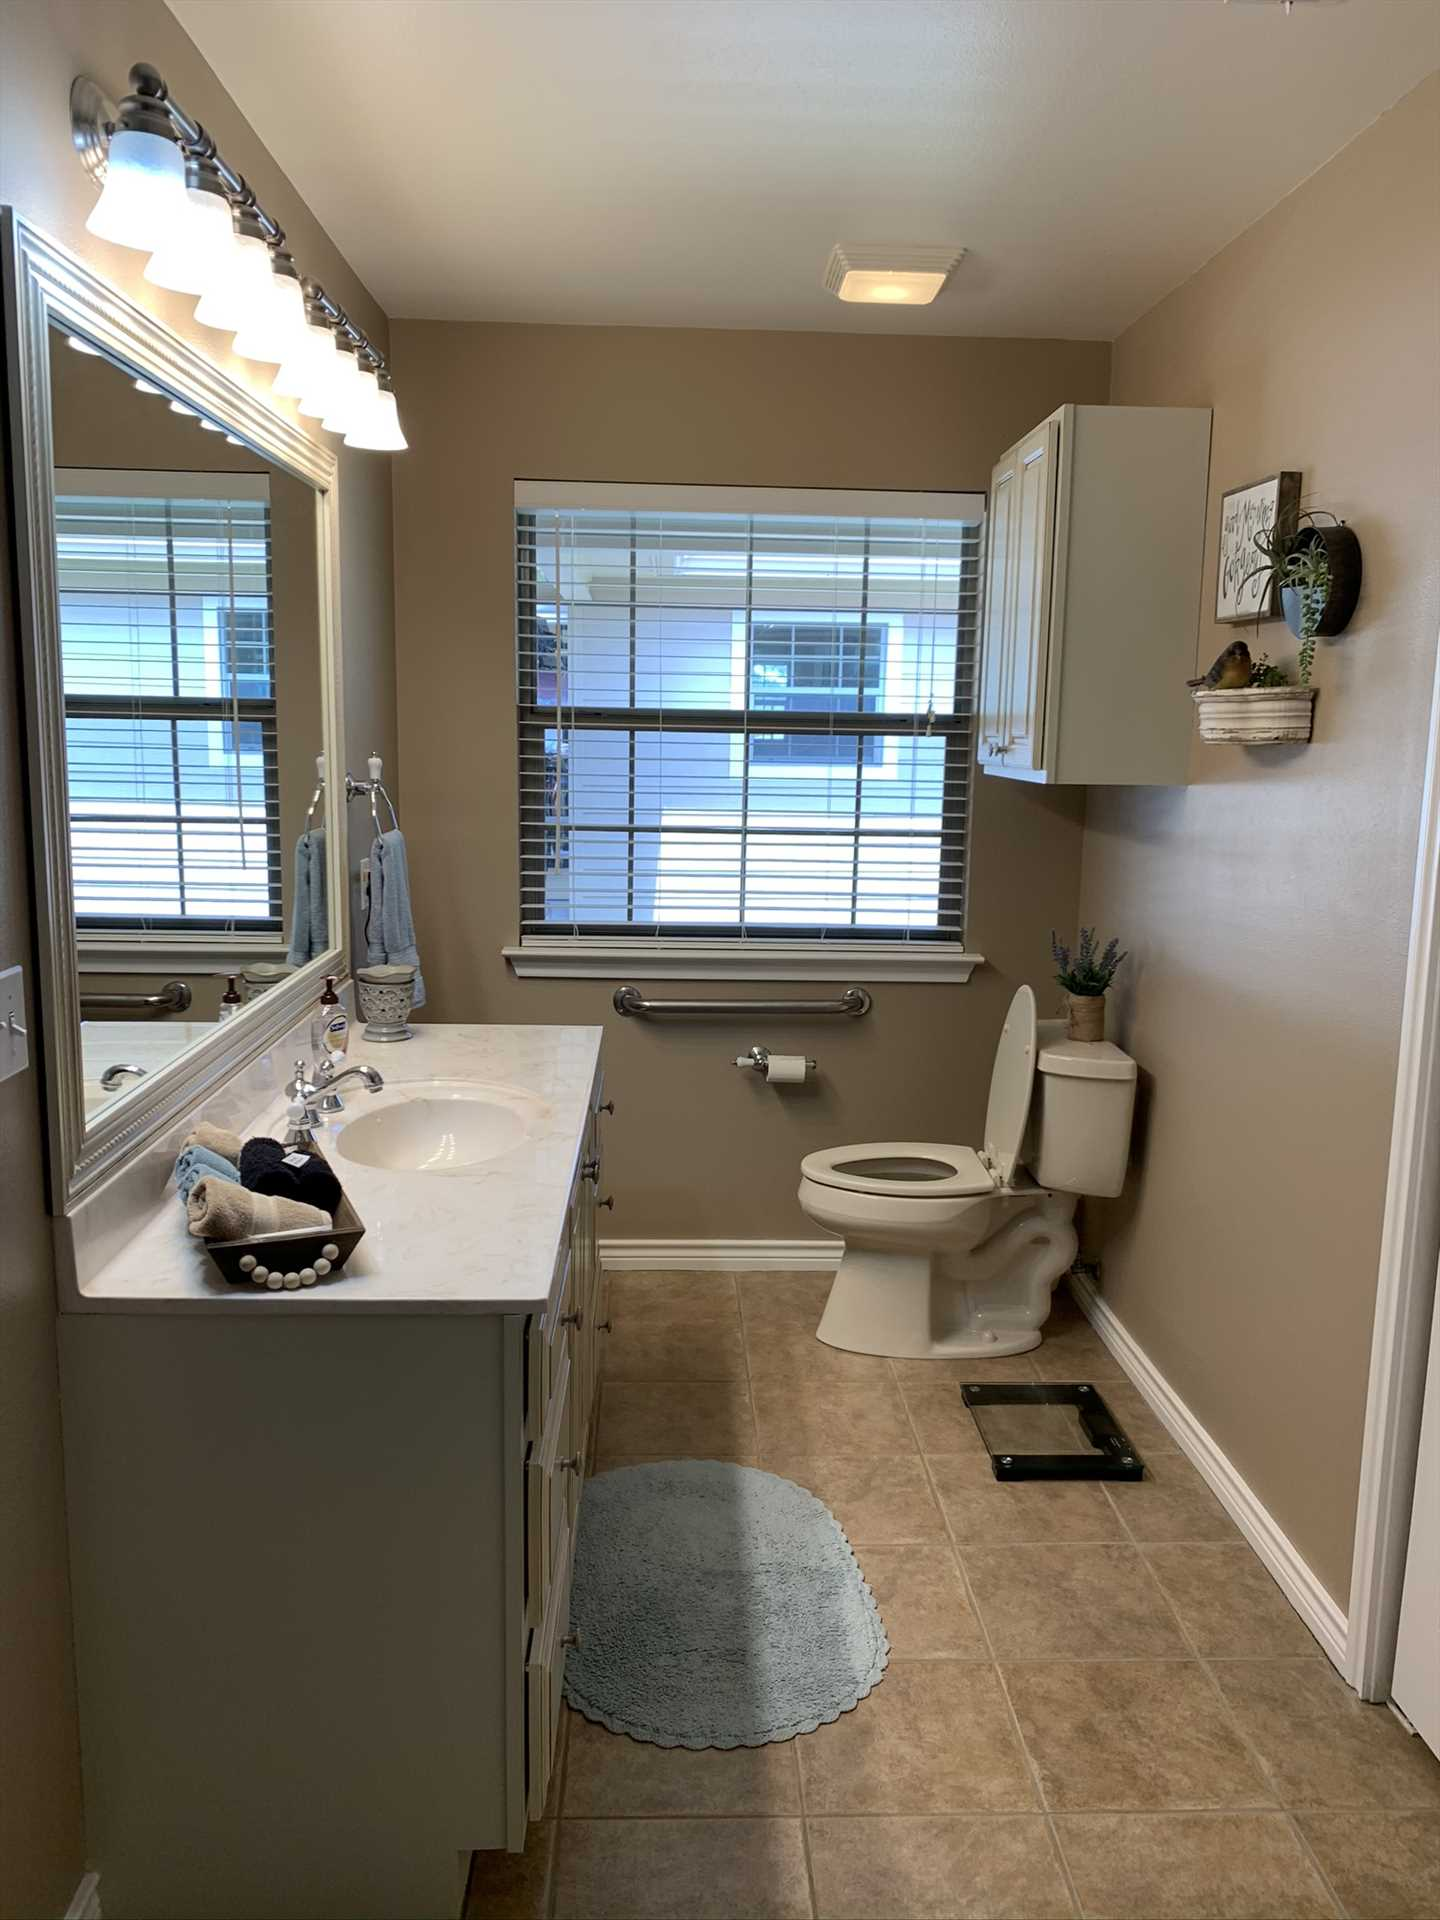 In the roomy master bath, you'll find an enormous mirrored vanity, and a special feature, as well....